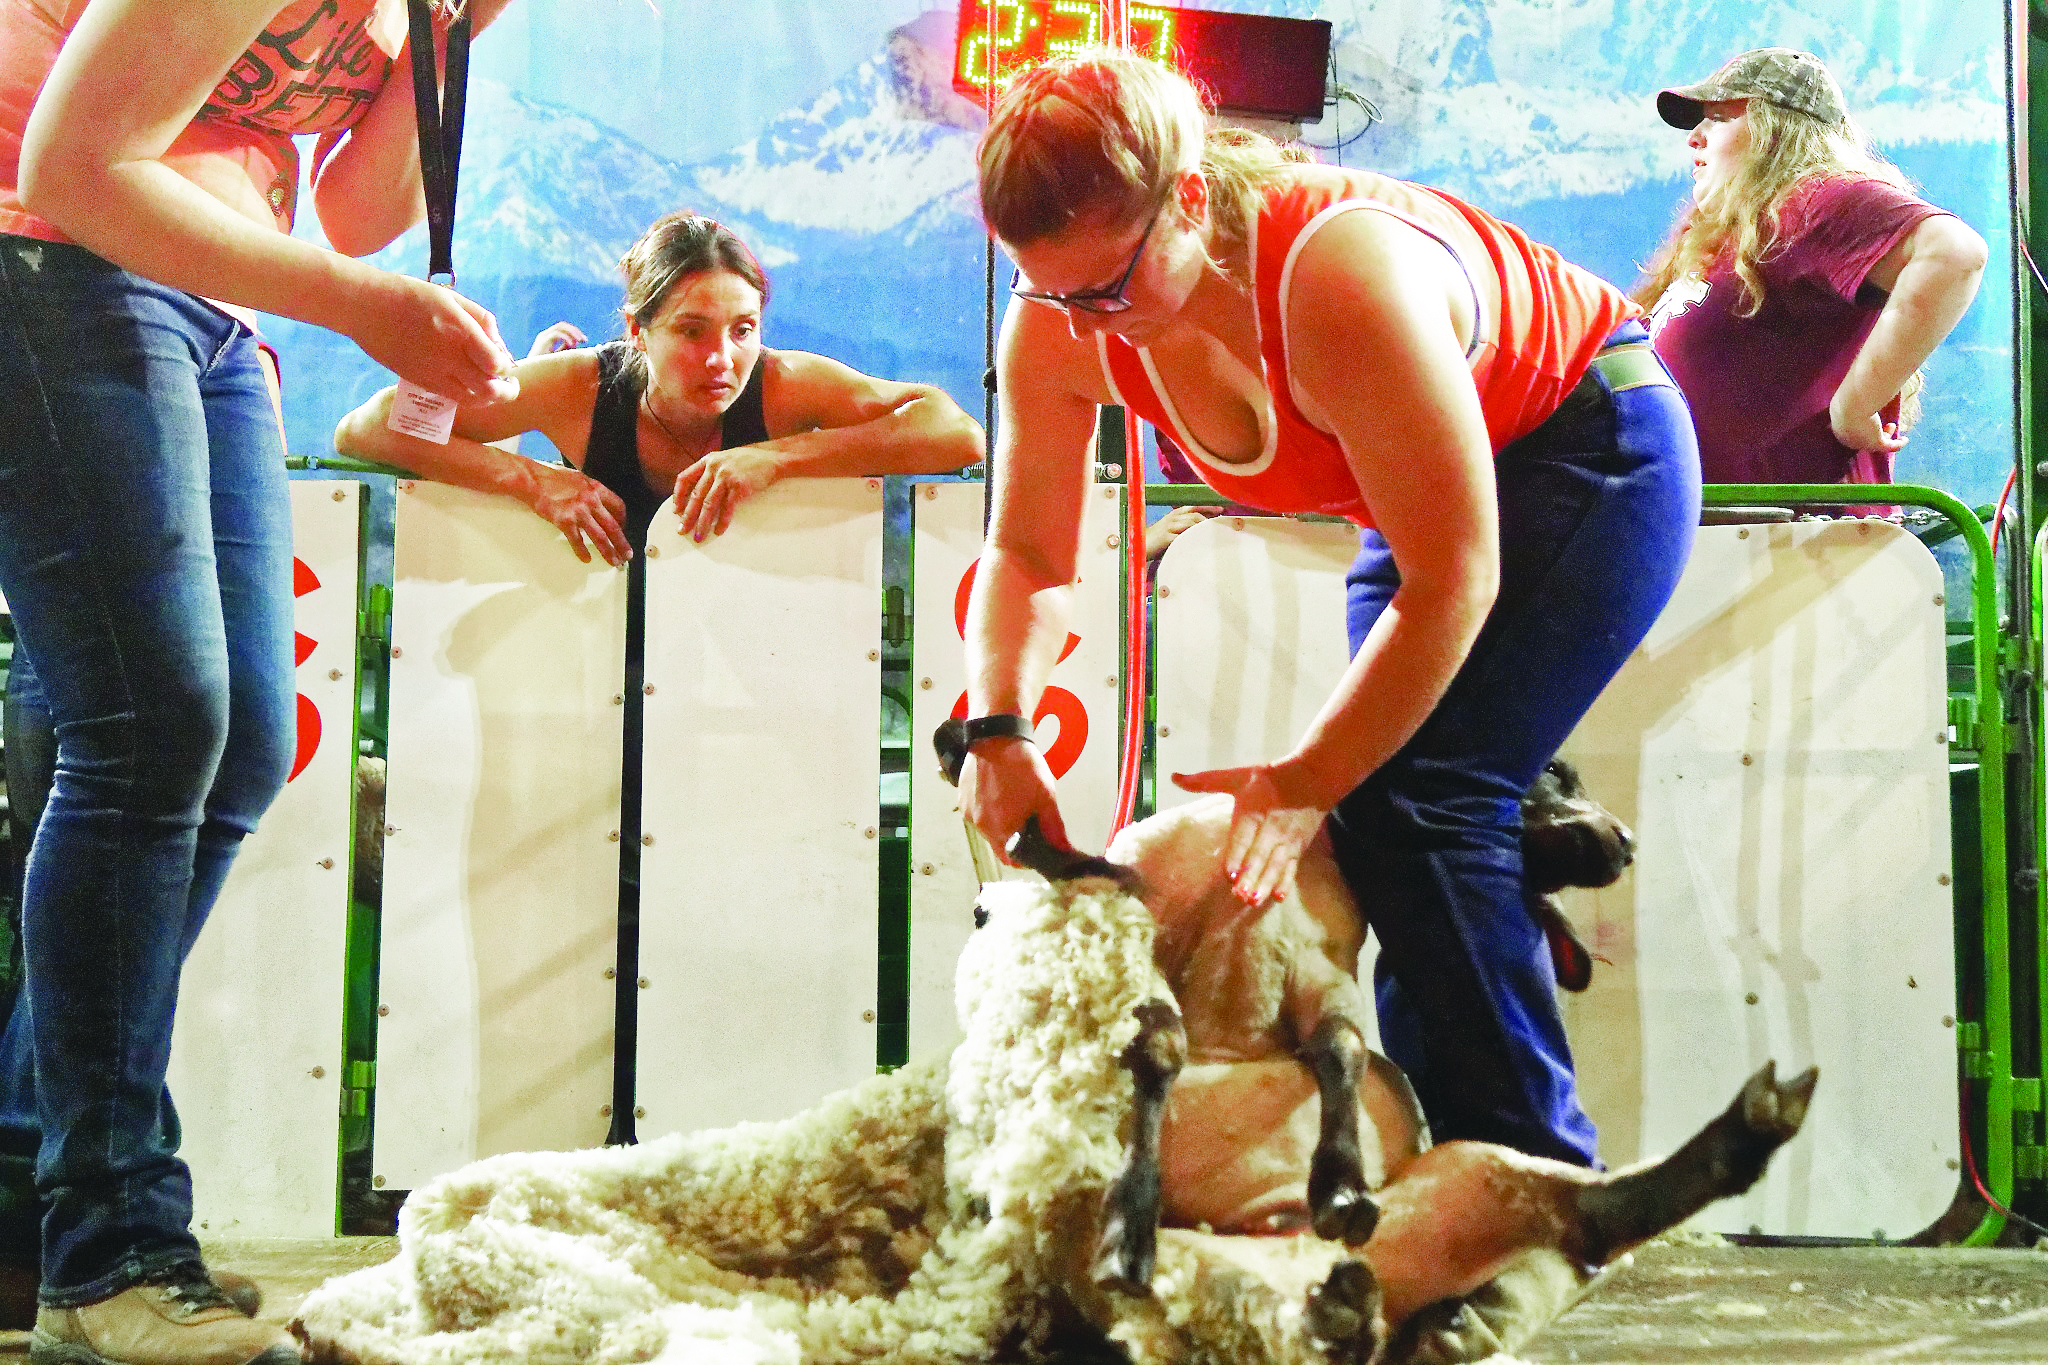 Amber Petersen competing at the Calgary Stampede this summer. Her friend and fellow shearer Pauline Bolay is pictured watching from the catch pen. (Submitted photo)